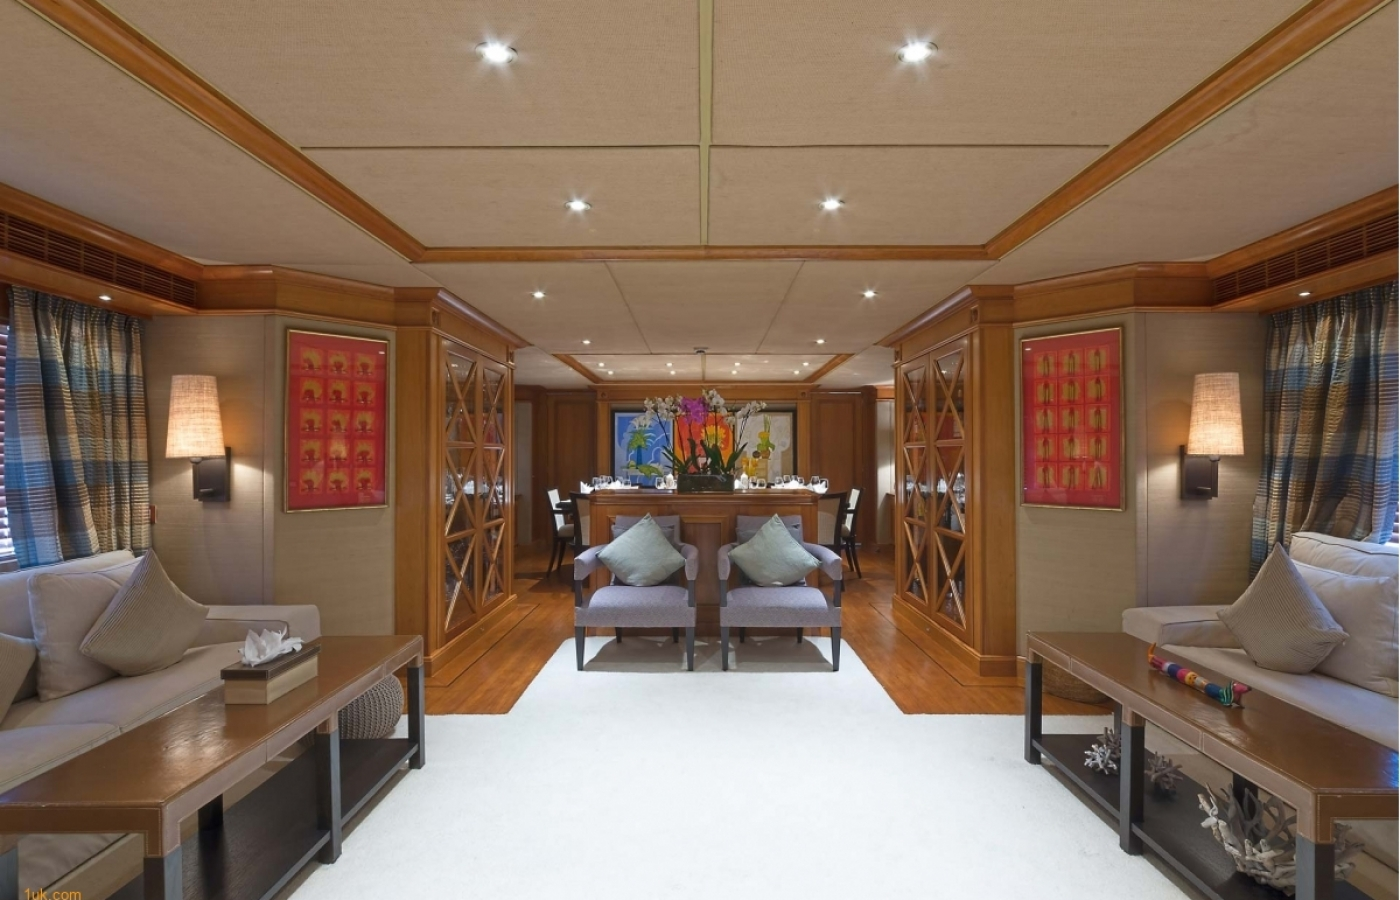 Luxury saloon area with cream carpets and wooden interior